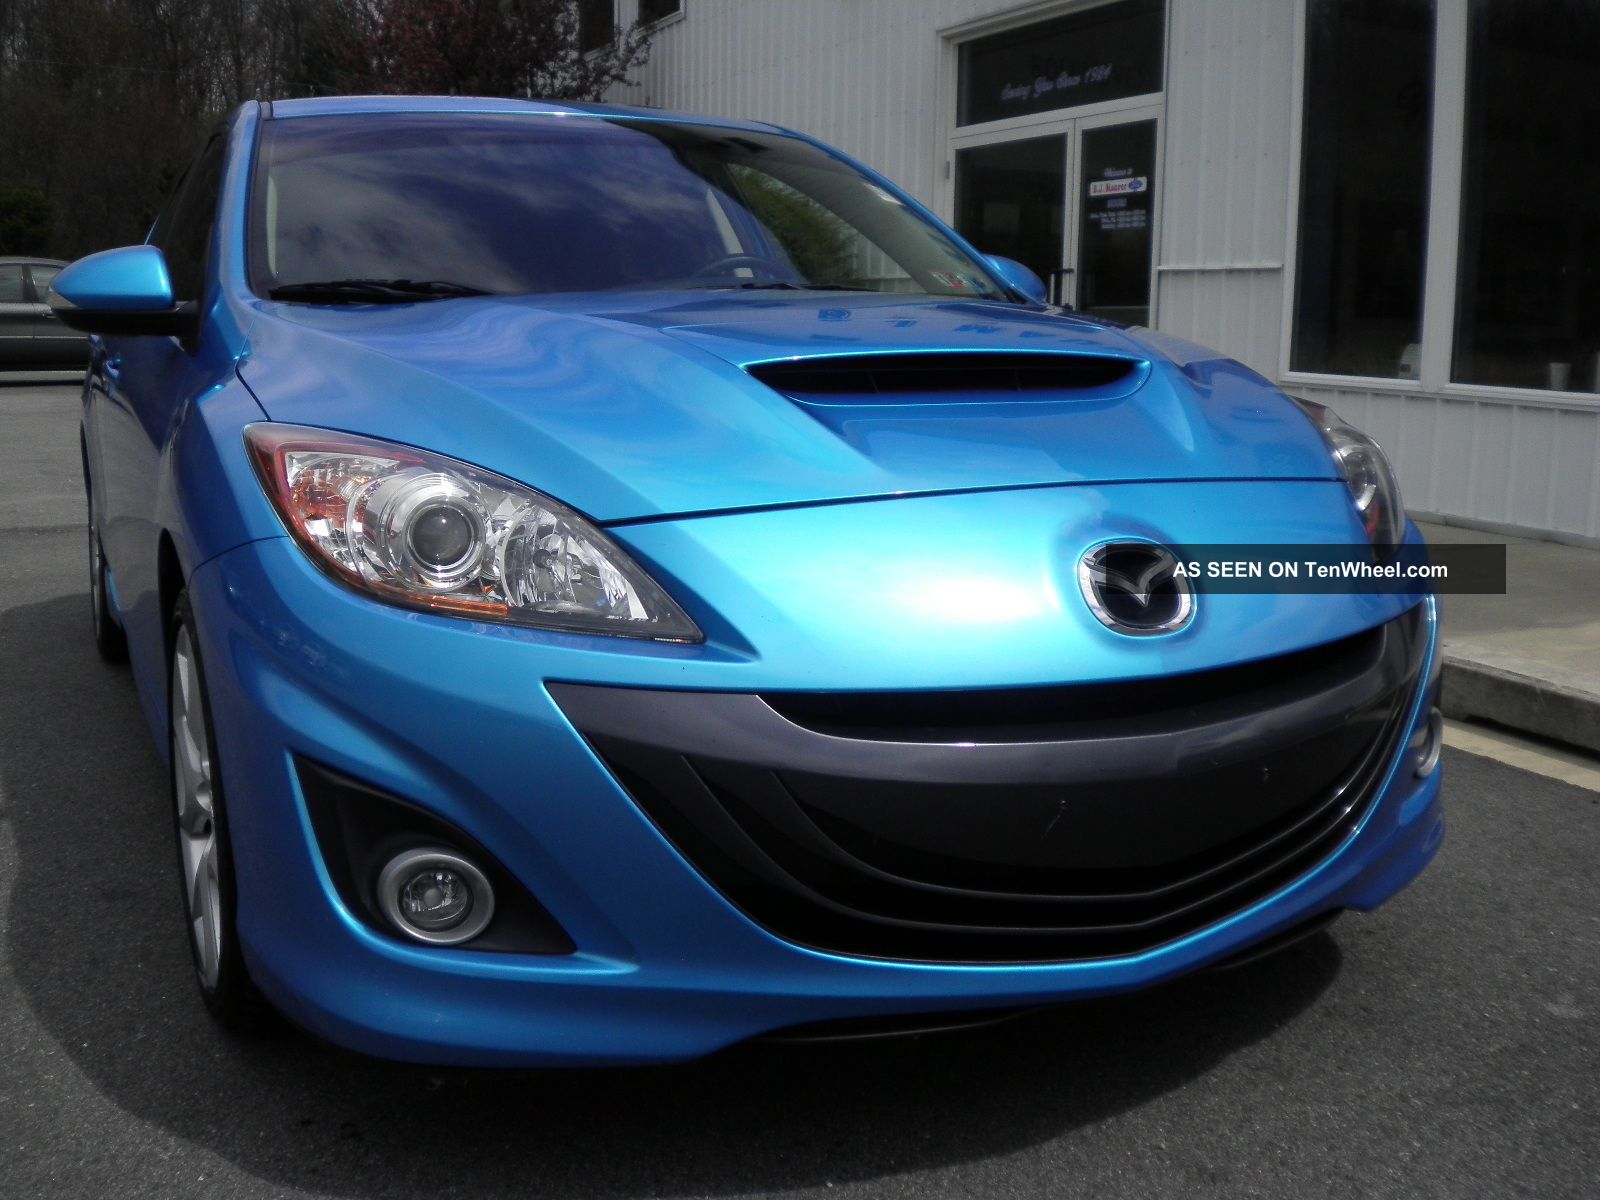 2010 mazda 3 mazdaspeed hatchback 4 door 2 3l. Black Bedroom Furniture Sets. Home Design Ideas